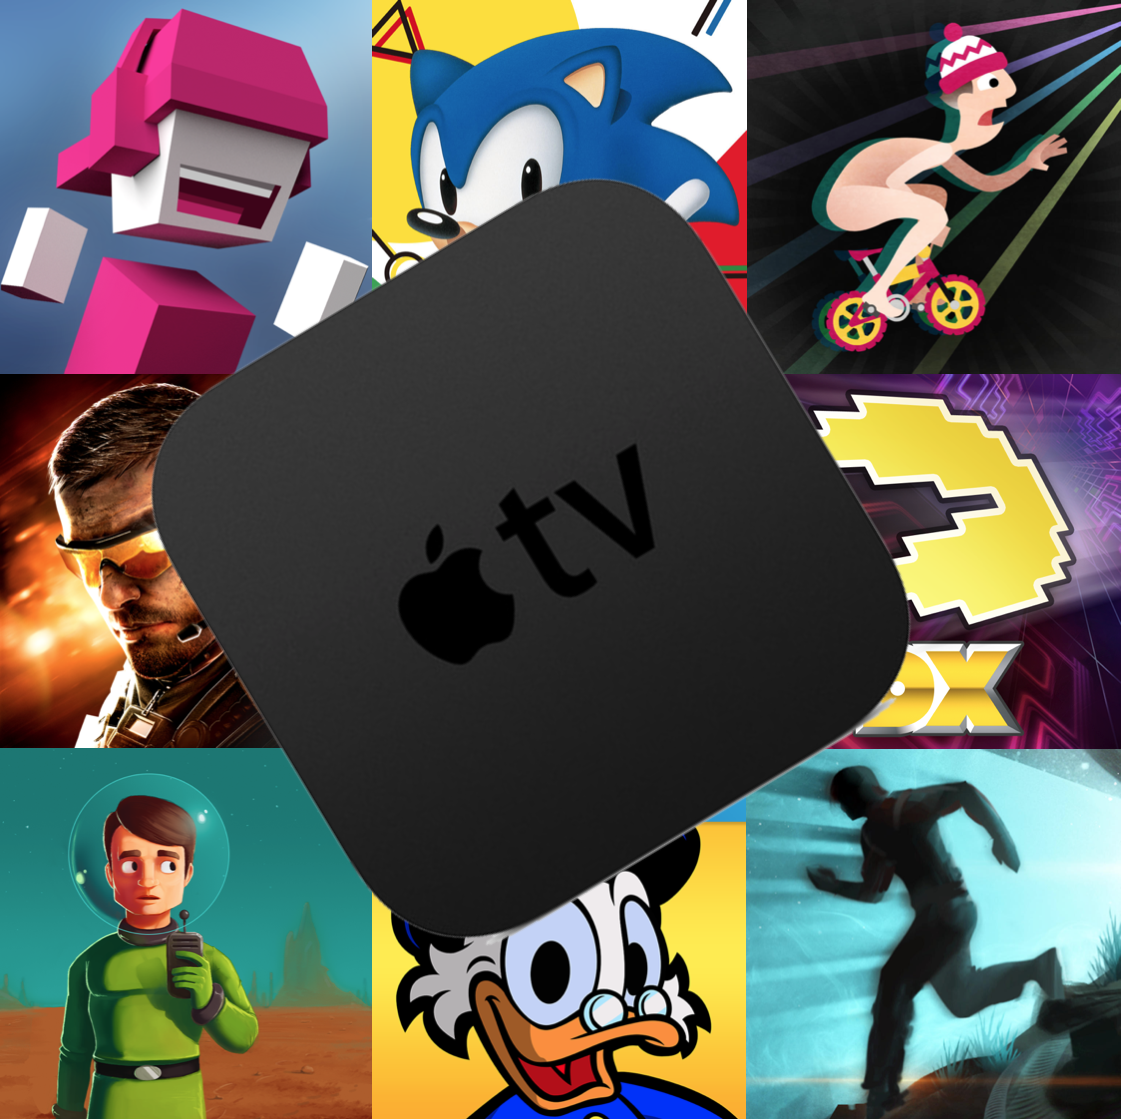 die 10 besten apple tv spiele des jahres 2017 stromstock. Black Bedroom Furniture Sets. Home Design Ideas